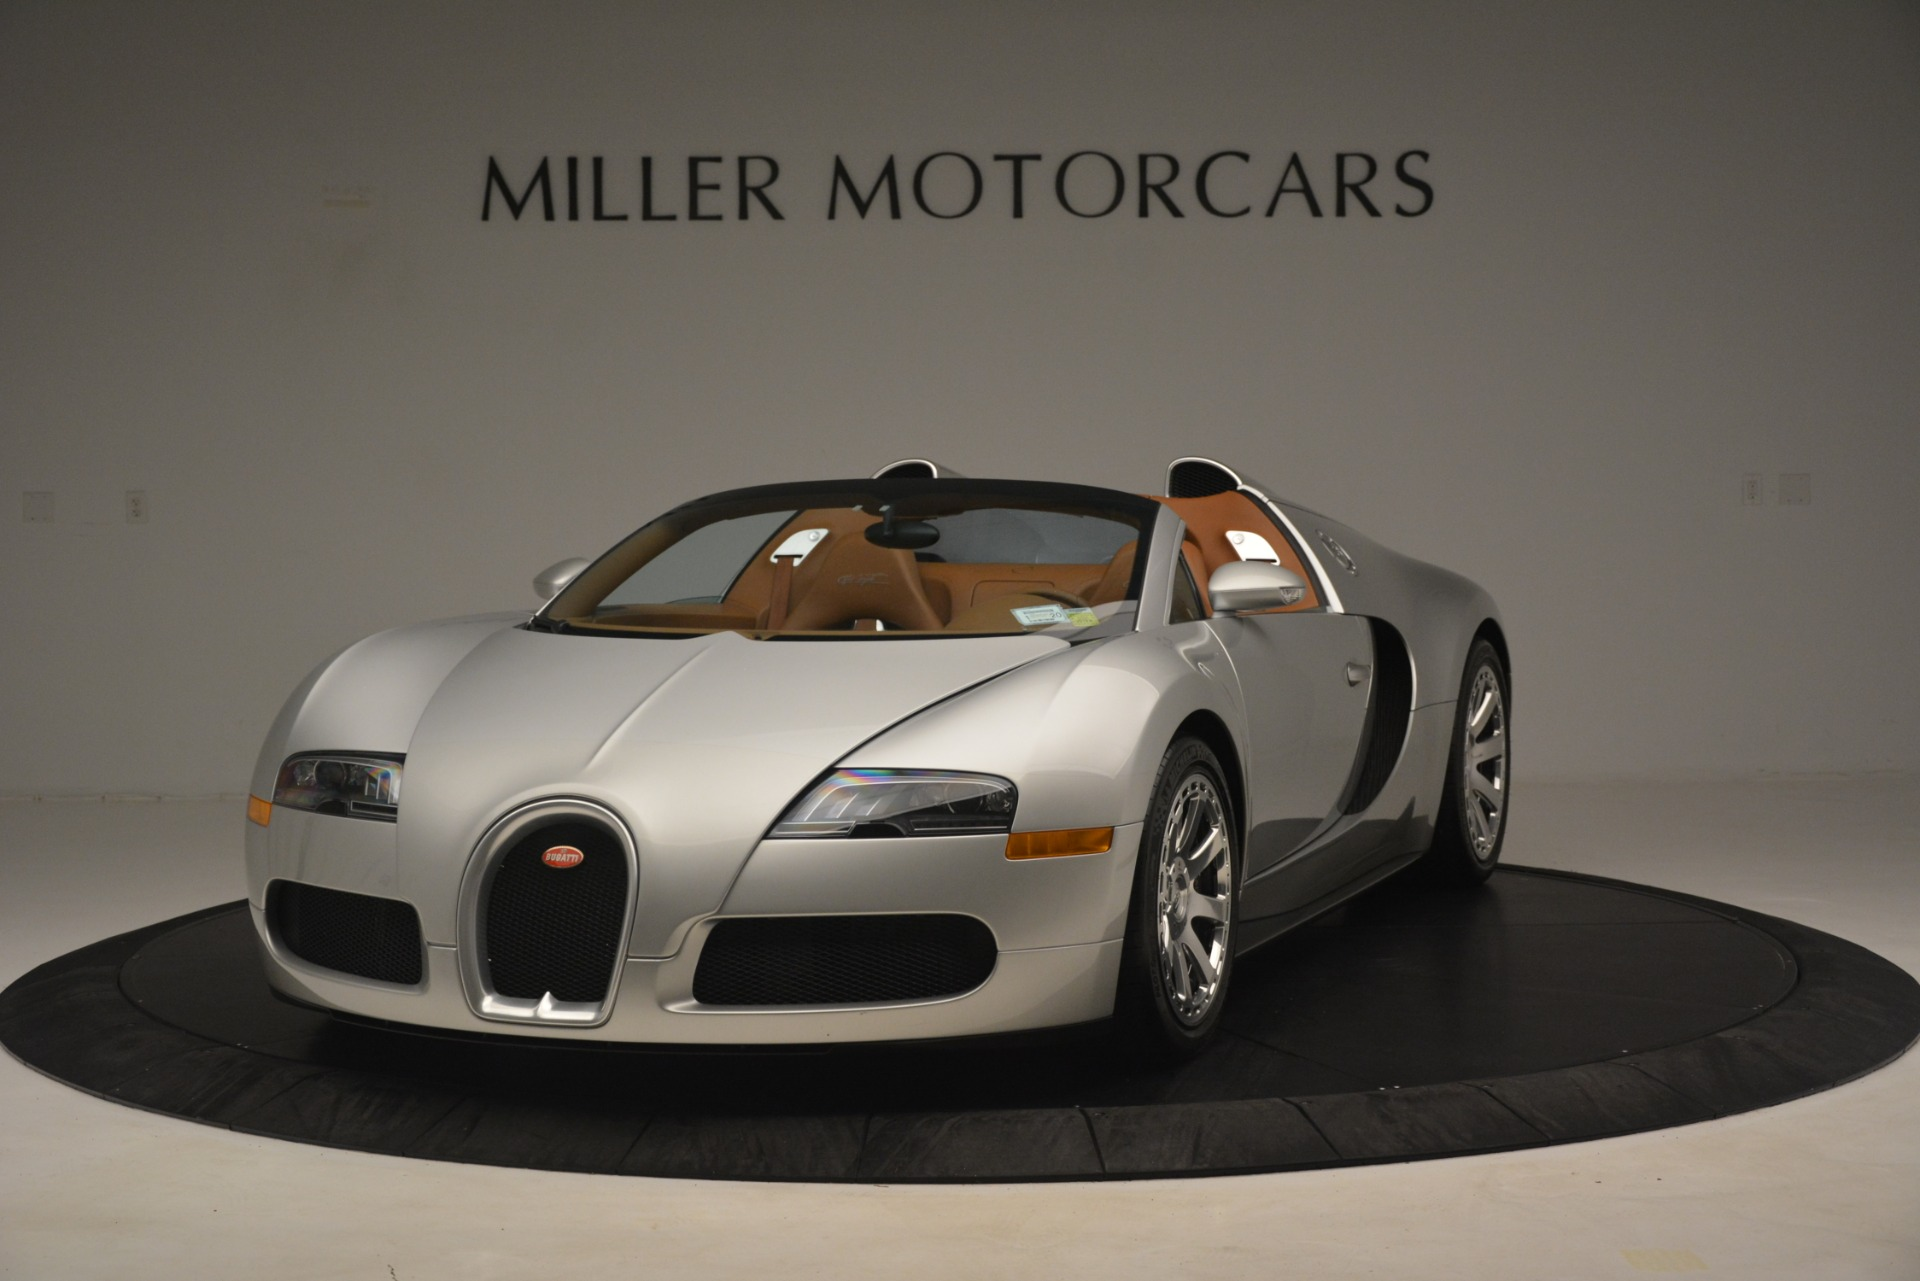 Used 2010 Bugatti Veyron 16.4 Grand Sport for sale Sold at Bentley Greenwich in Greenwich CT 06830 1